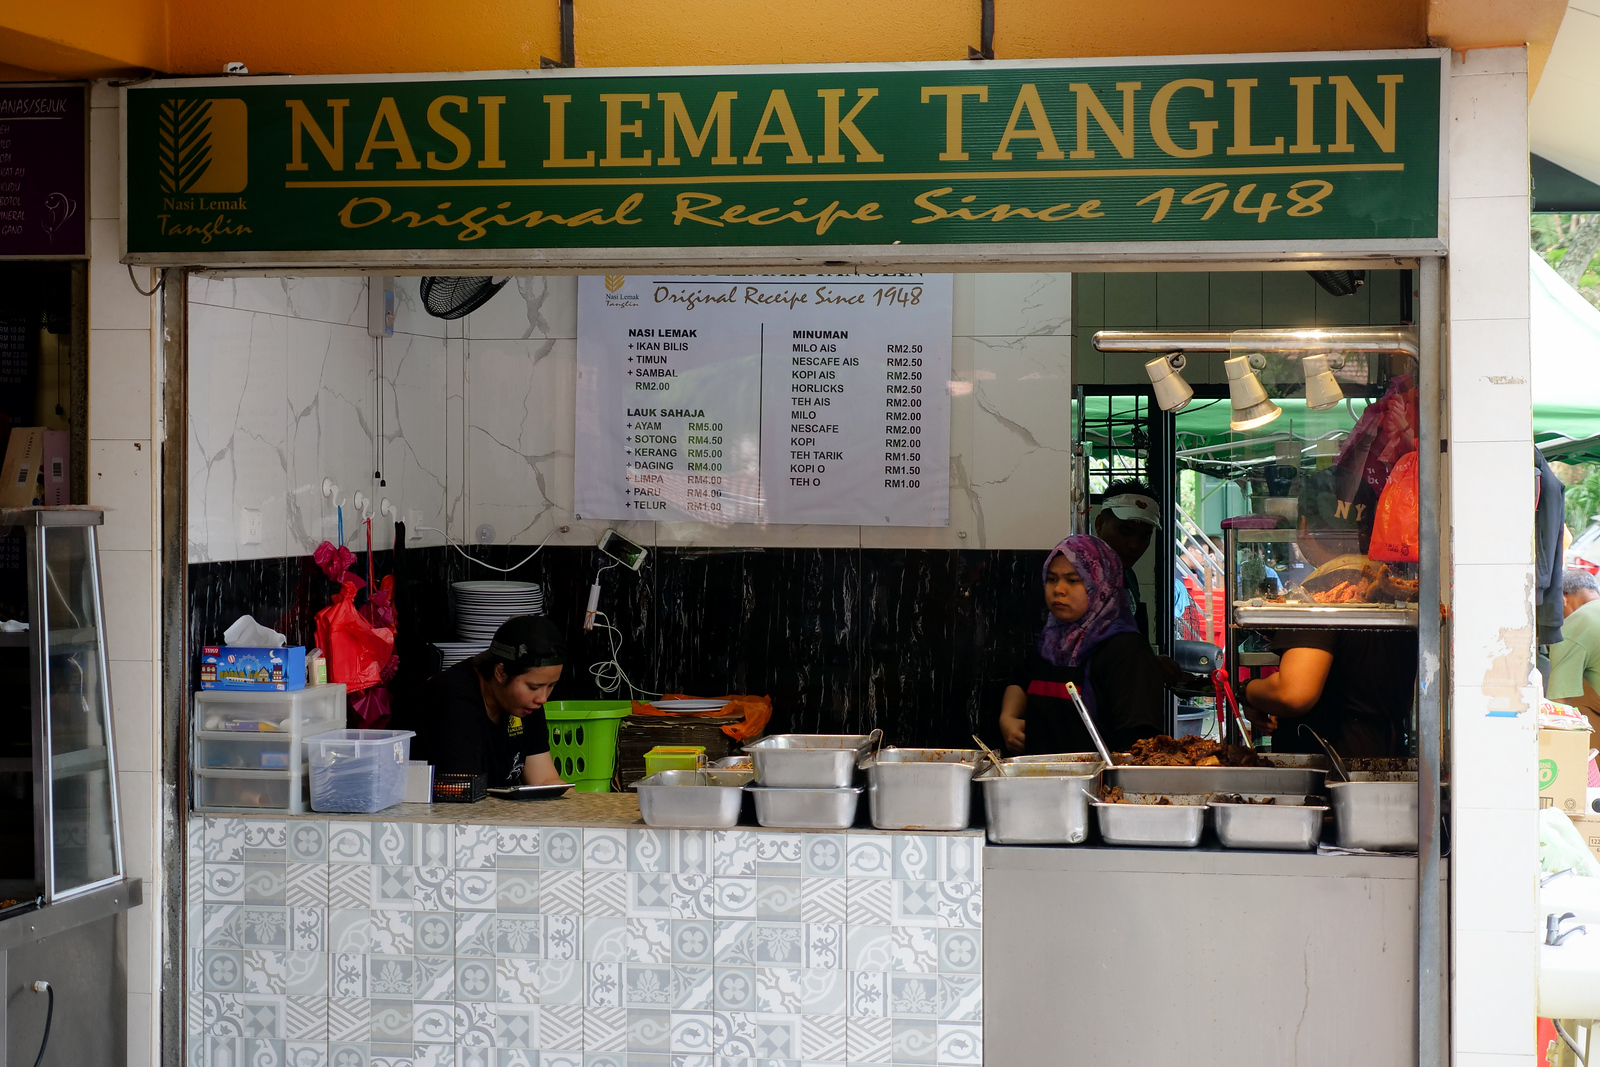 This restaurant is specializing in Malaysia's National Food, Nasi Lemak, and they also have a large selection of meats and curries to go over rice as well as the Fat Rice, Nasi Lemak, made with coconut milk and pandan leaf